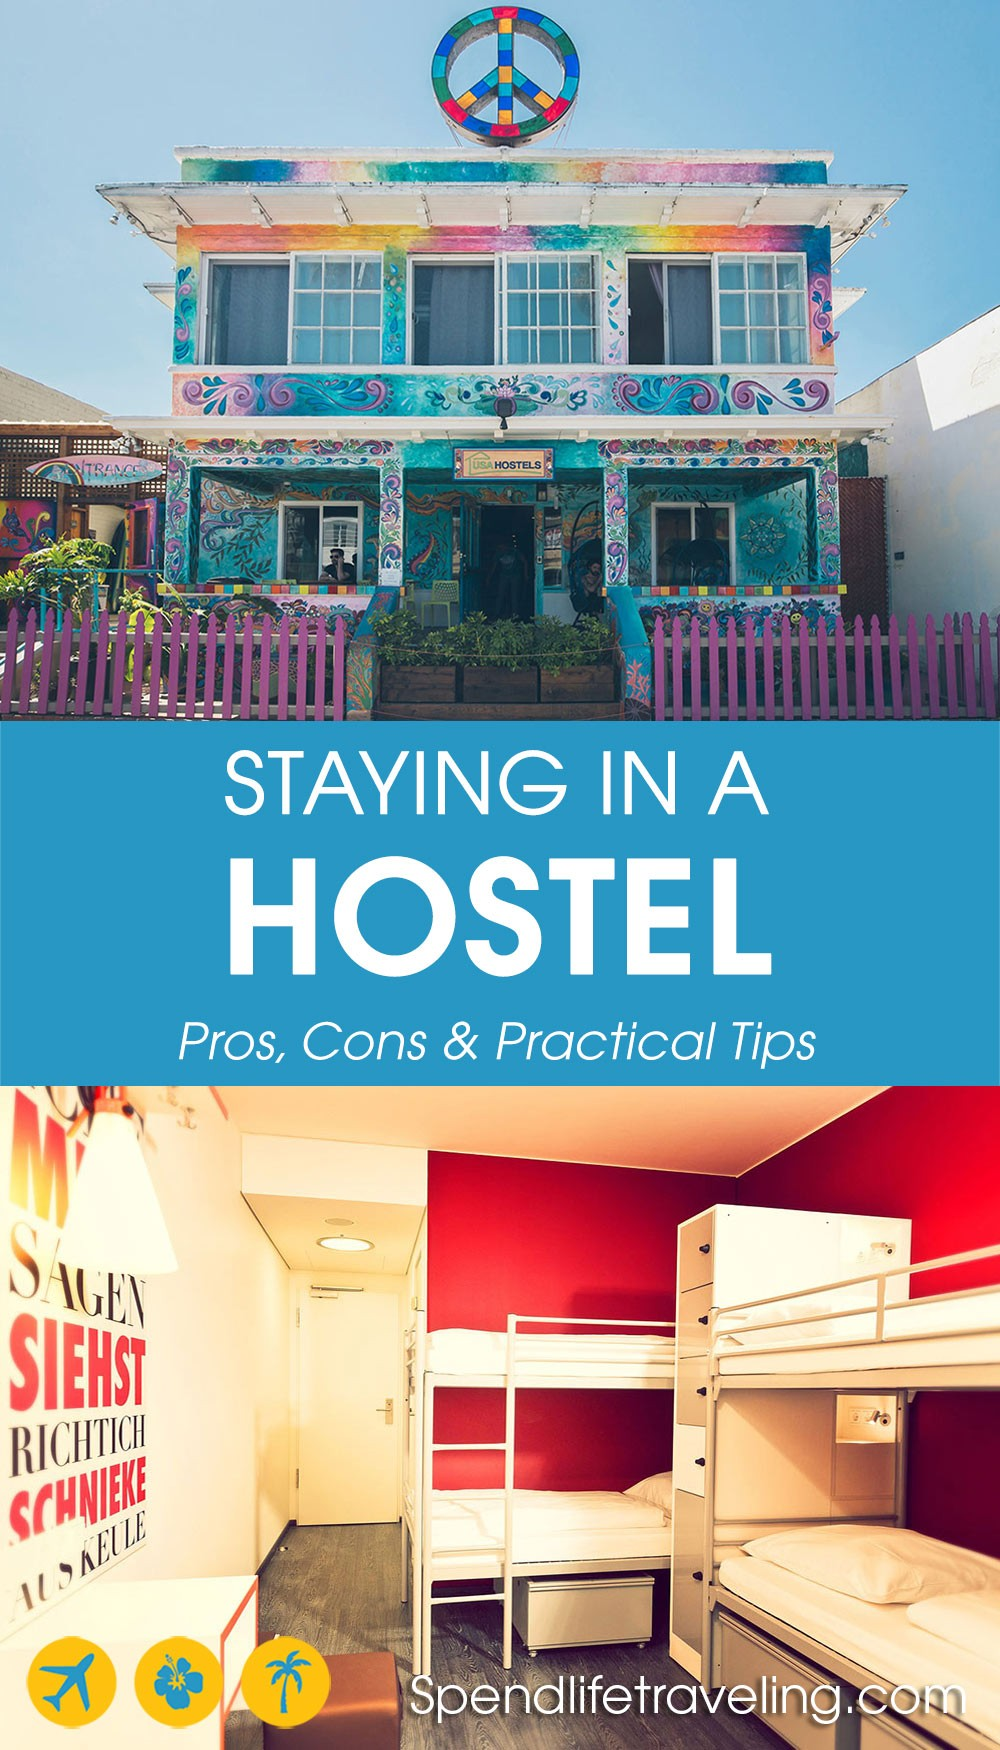 Pros and cons of staying in a hostel